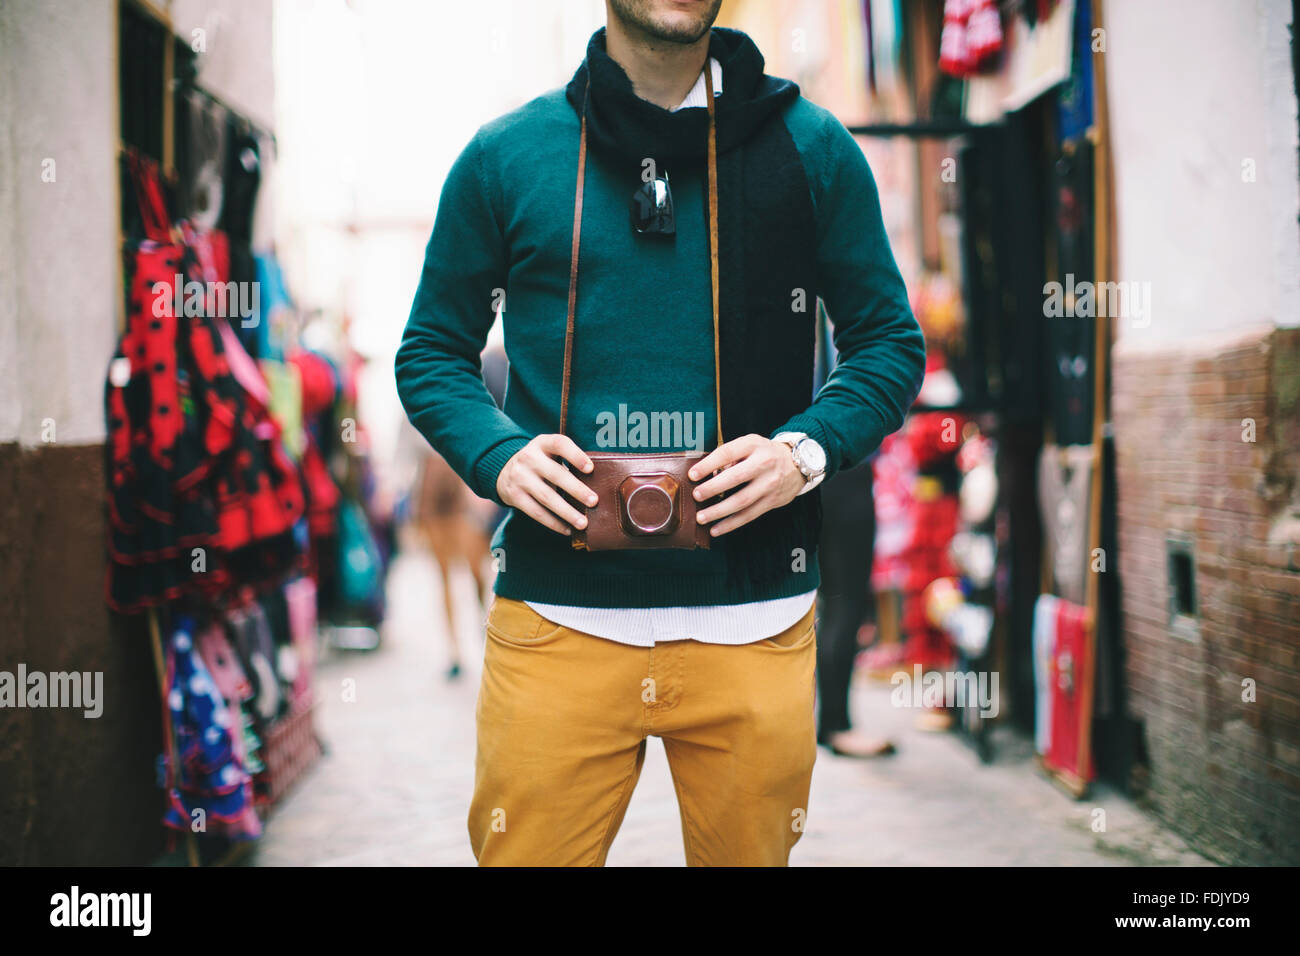 Young man holding a vintage retro camera, Seville, Spain - Stock Image